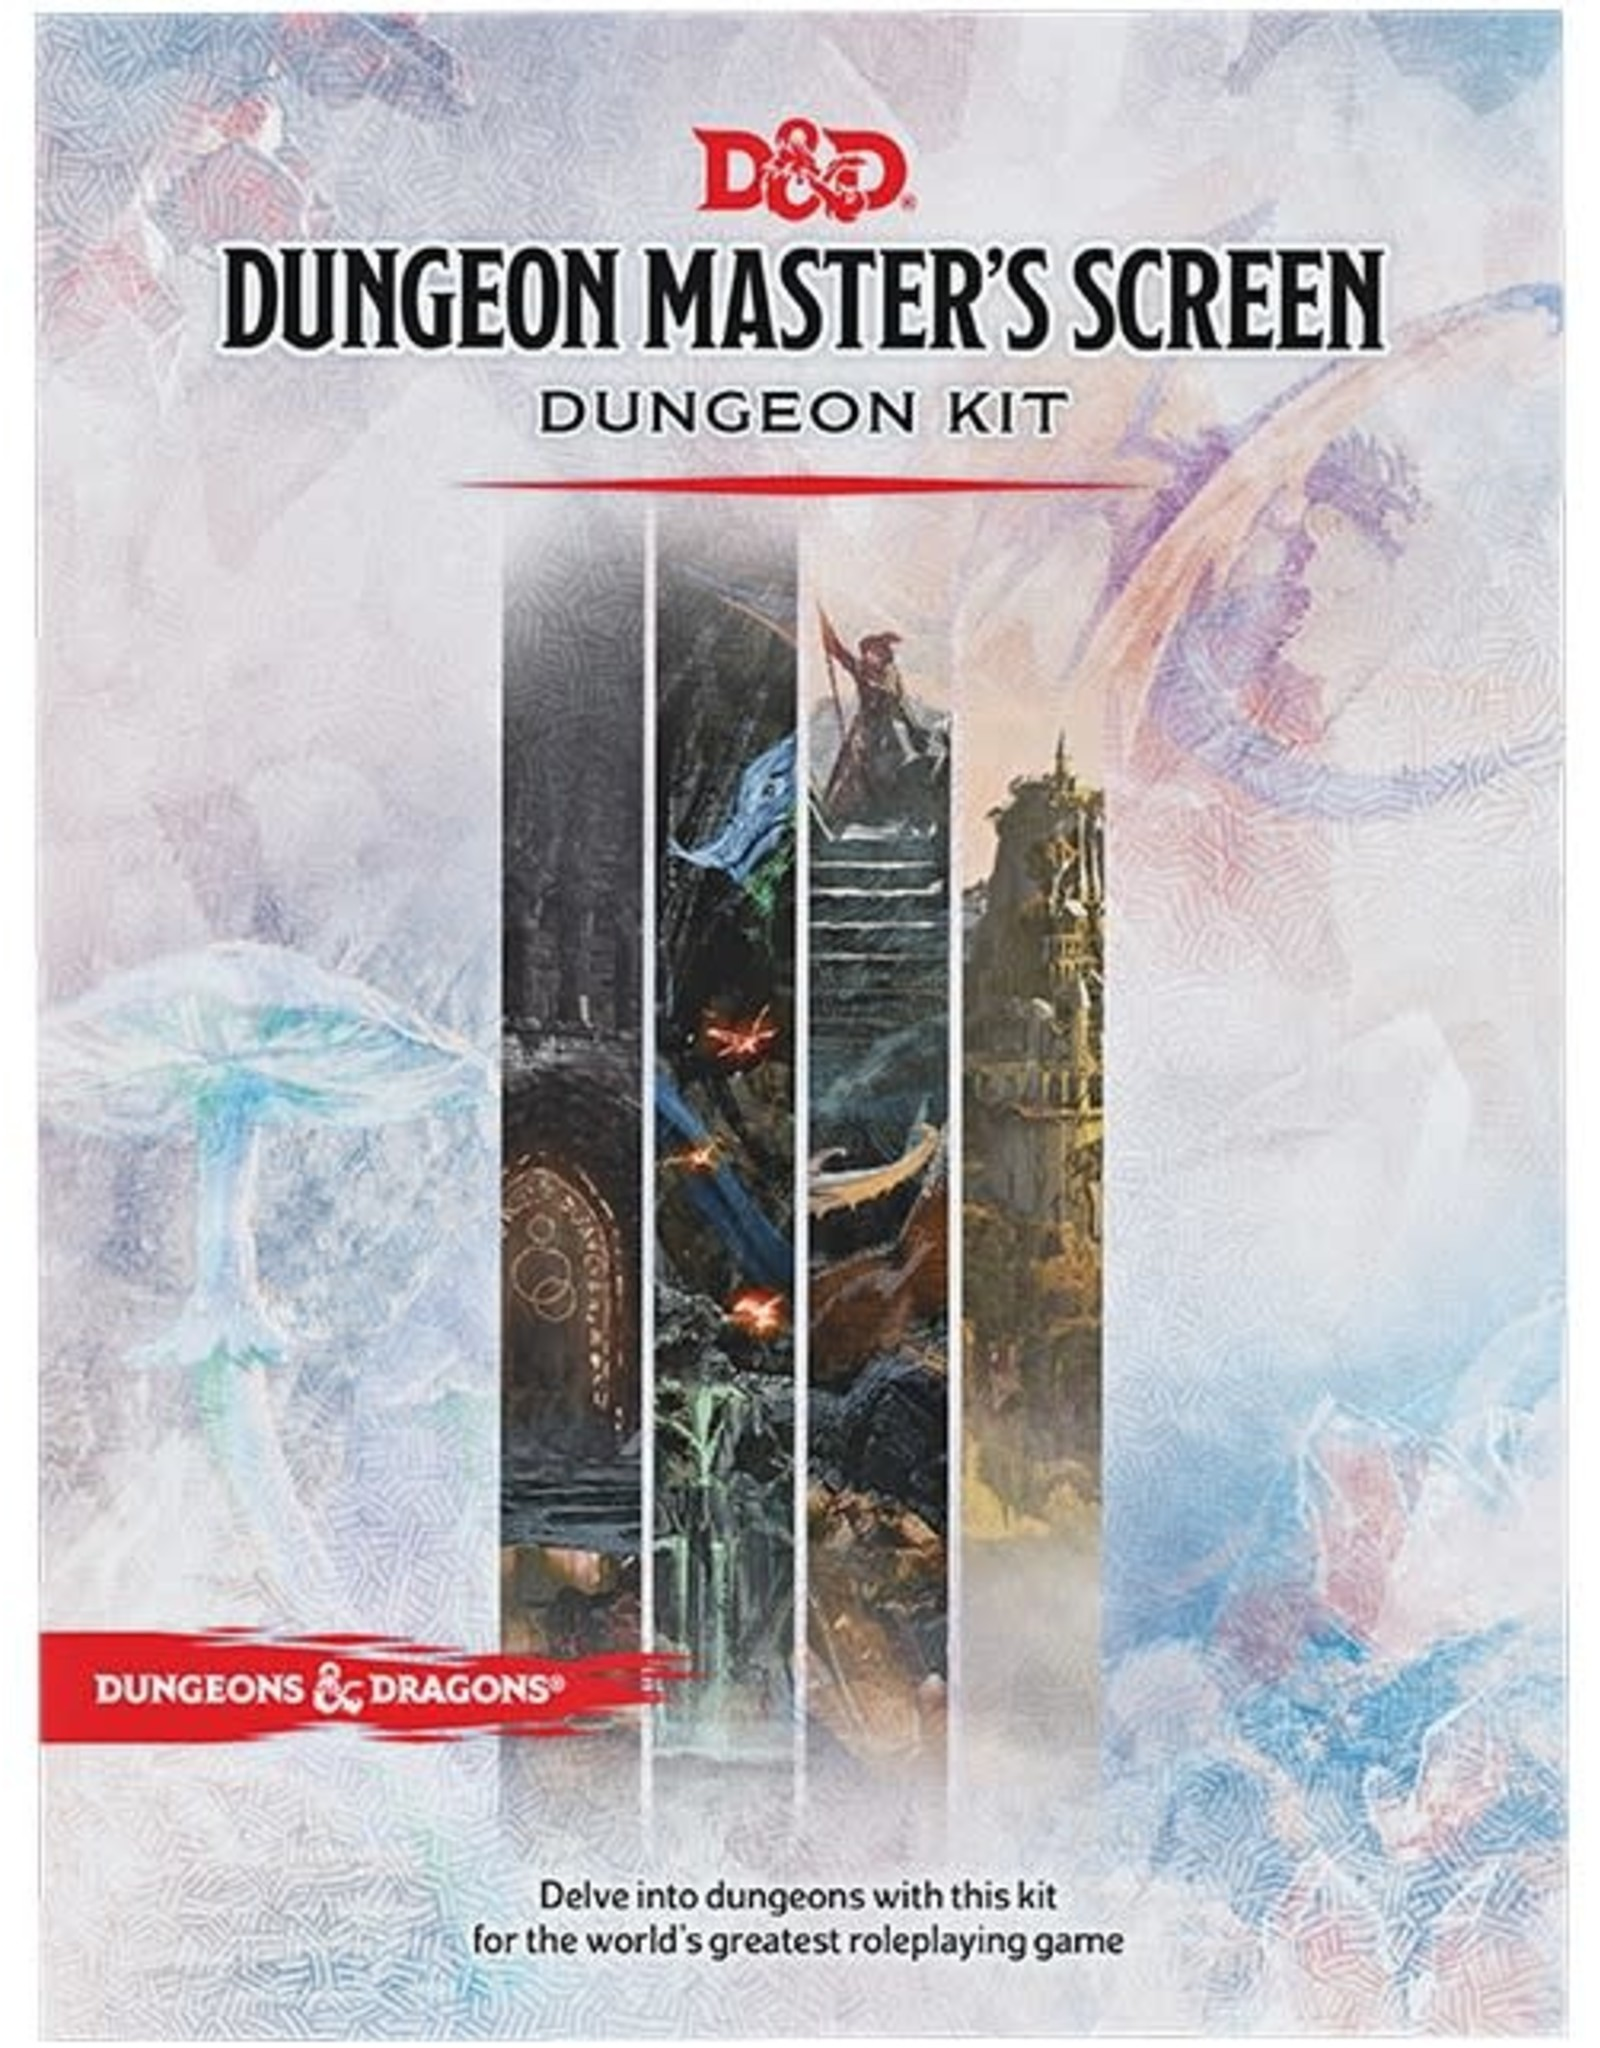 White Wizard Games Dungeons and Dragons RPG: Dungeon Master's Screen Dungeon Kit